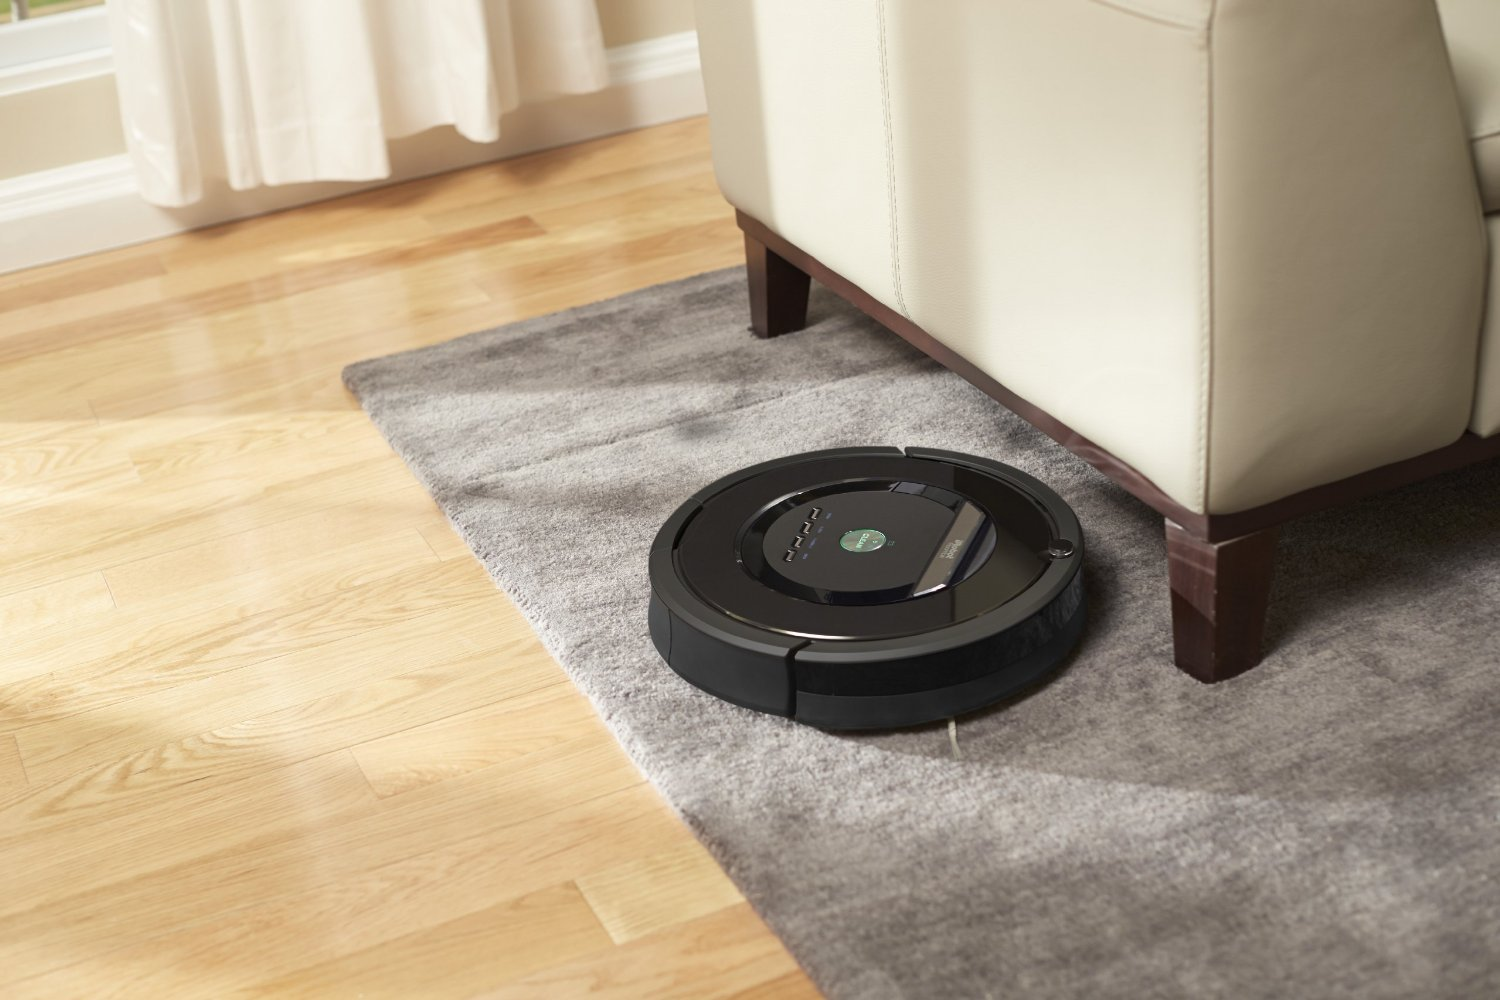 iRobot Roomba 880 Vacuum Cleaning Robot For Pets and Allergies | Animals Zone